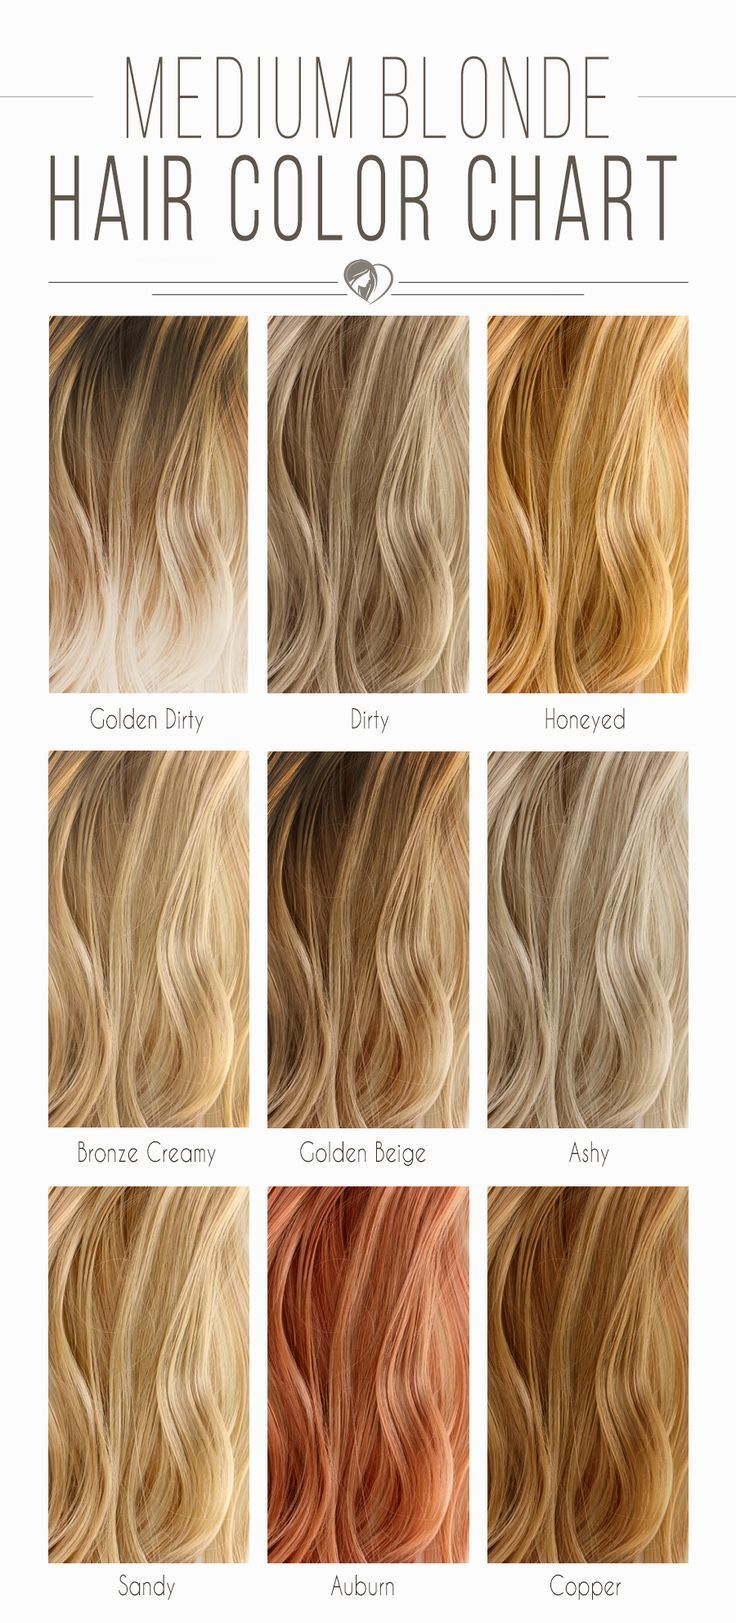 Hair Color 2017 2018 Medium Blonde Chart Blondehair Is Your Key To The Perfect Look